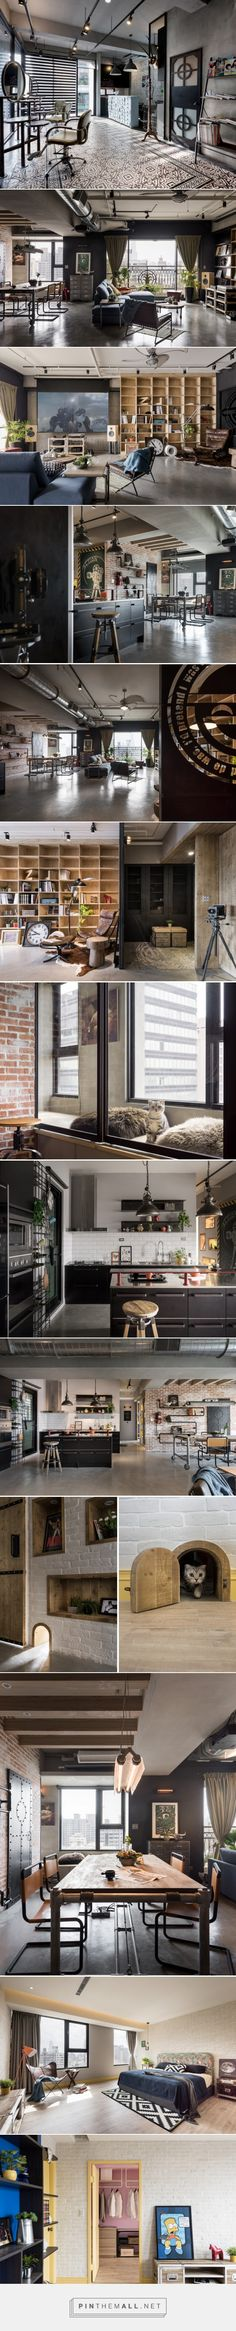 HAO design highlights industrial charm in recall house - created via http://pinthemall.net